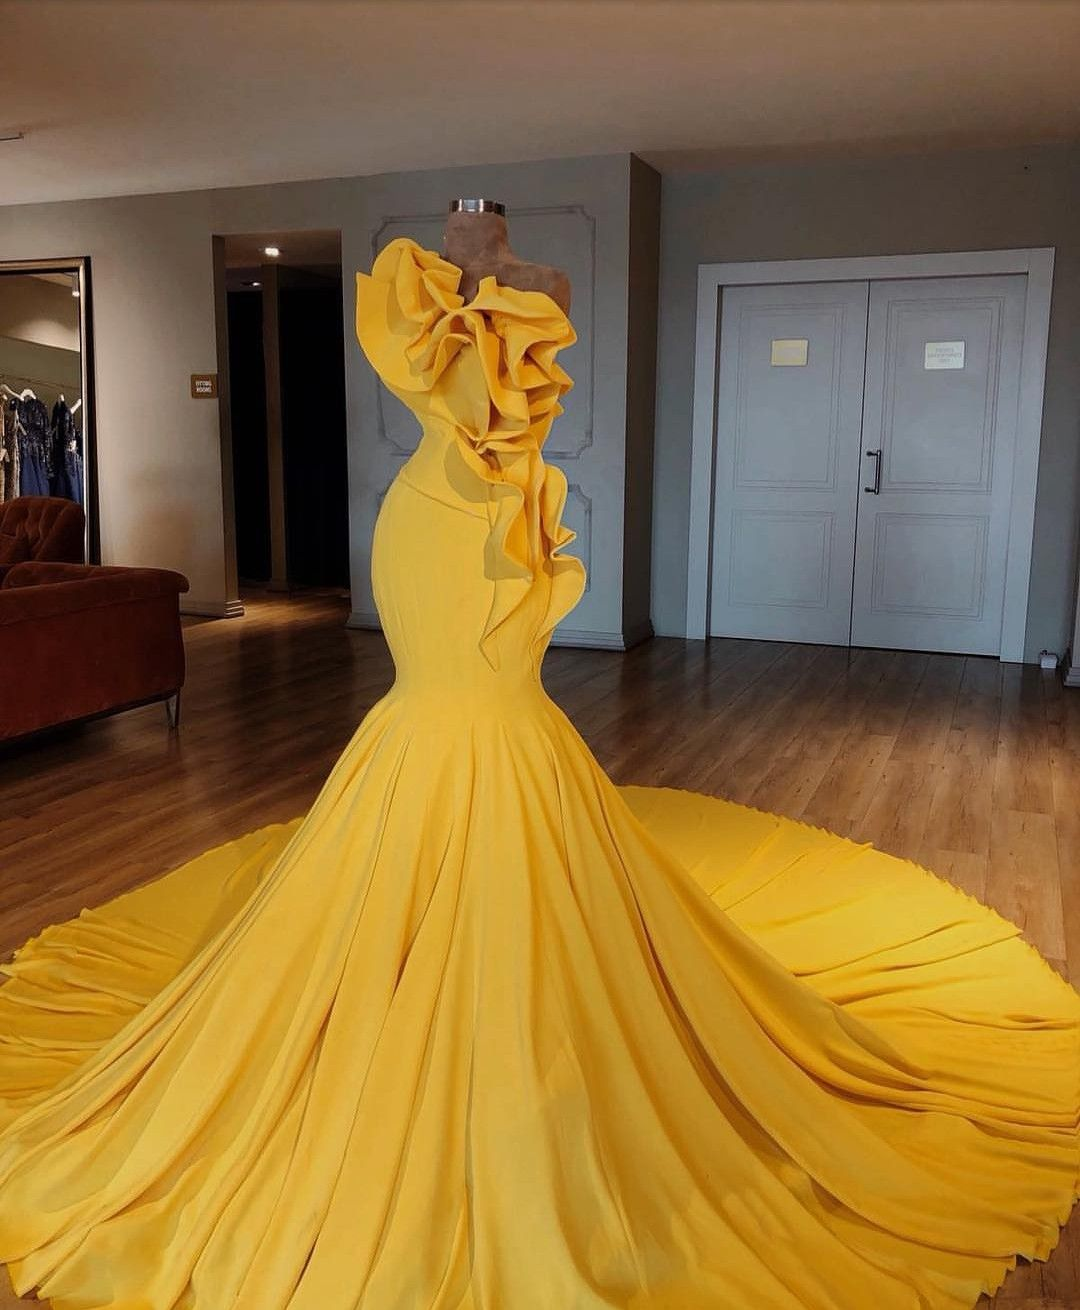 Dress to empress is full of beautiful and extravagant dresses